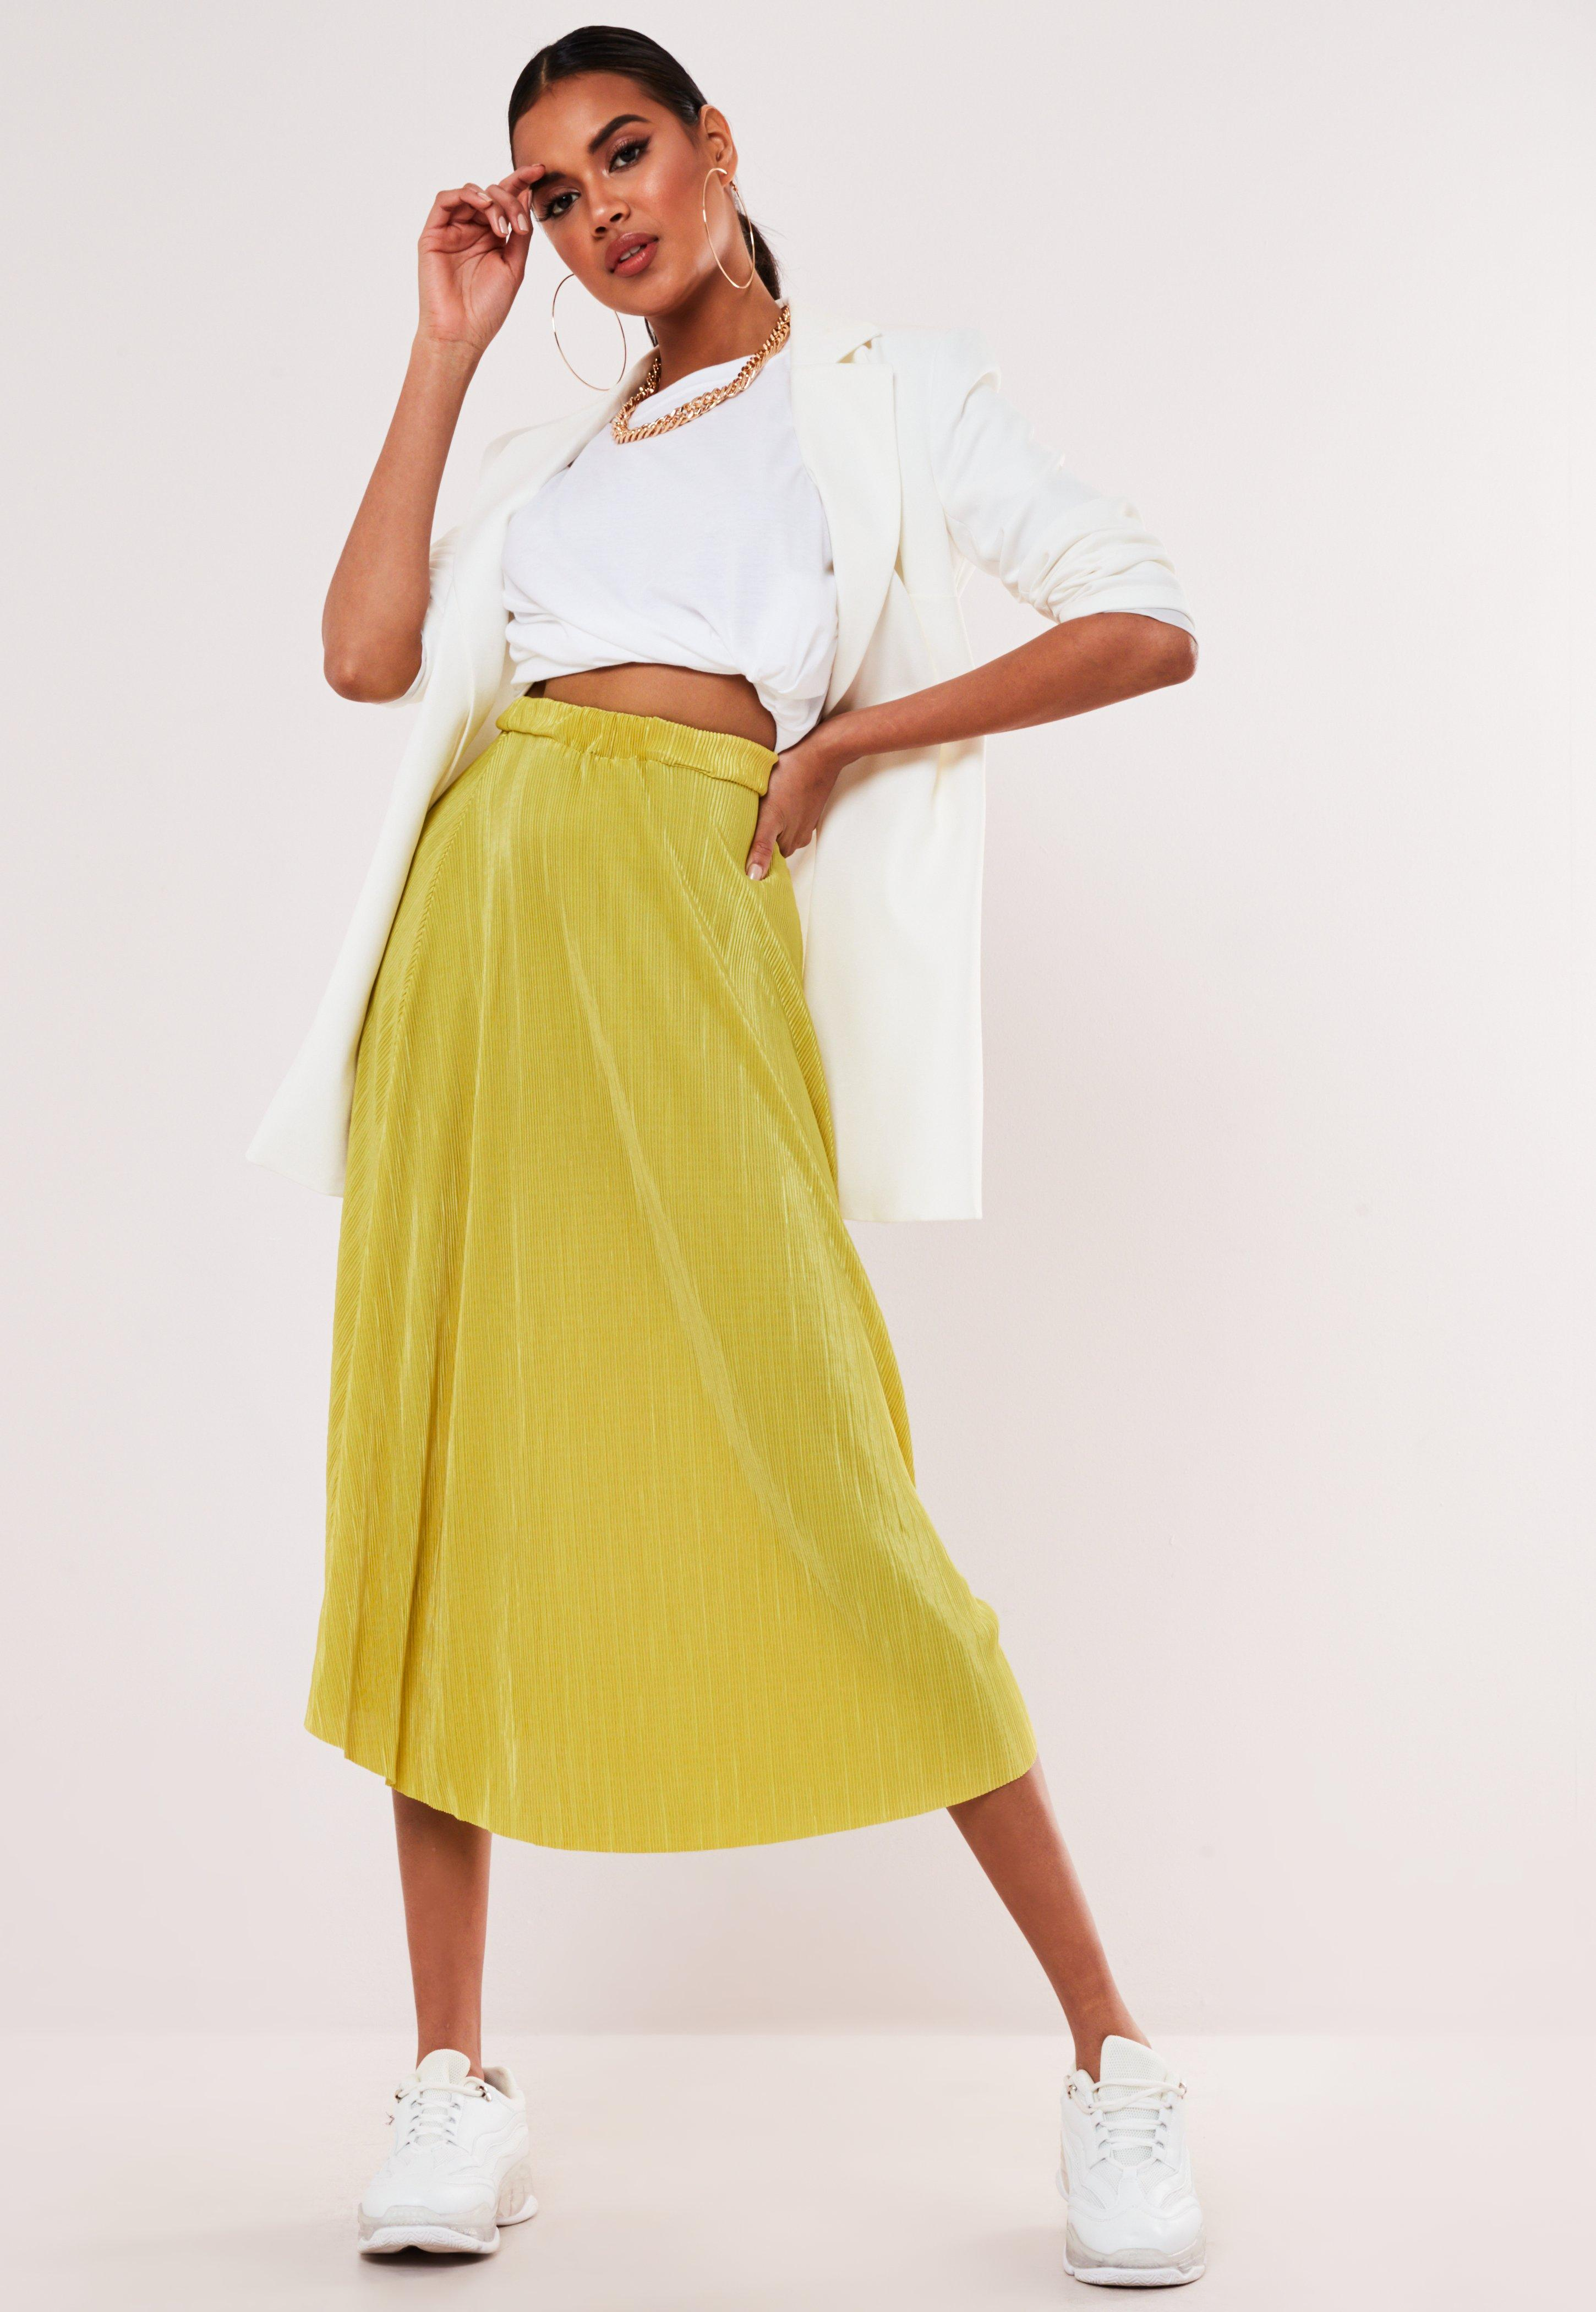 4a3c08103 Skirts - Shop Women's Skirts Online | Missguided